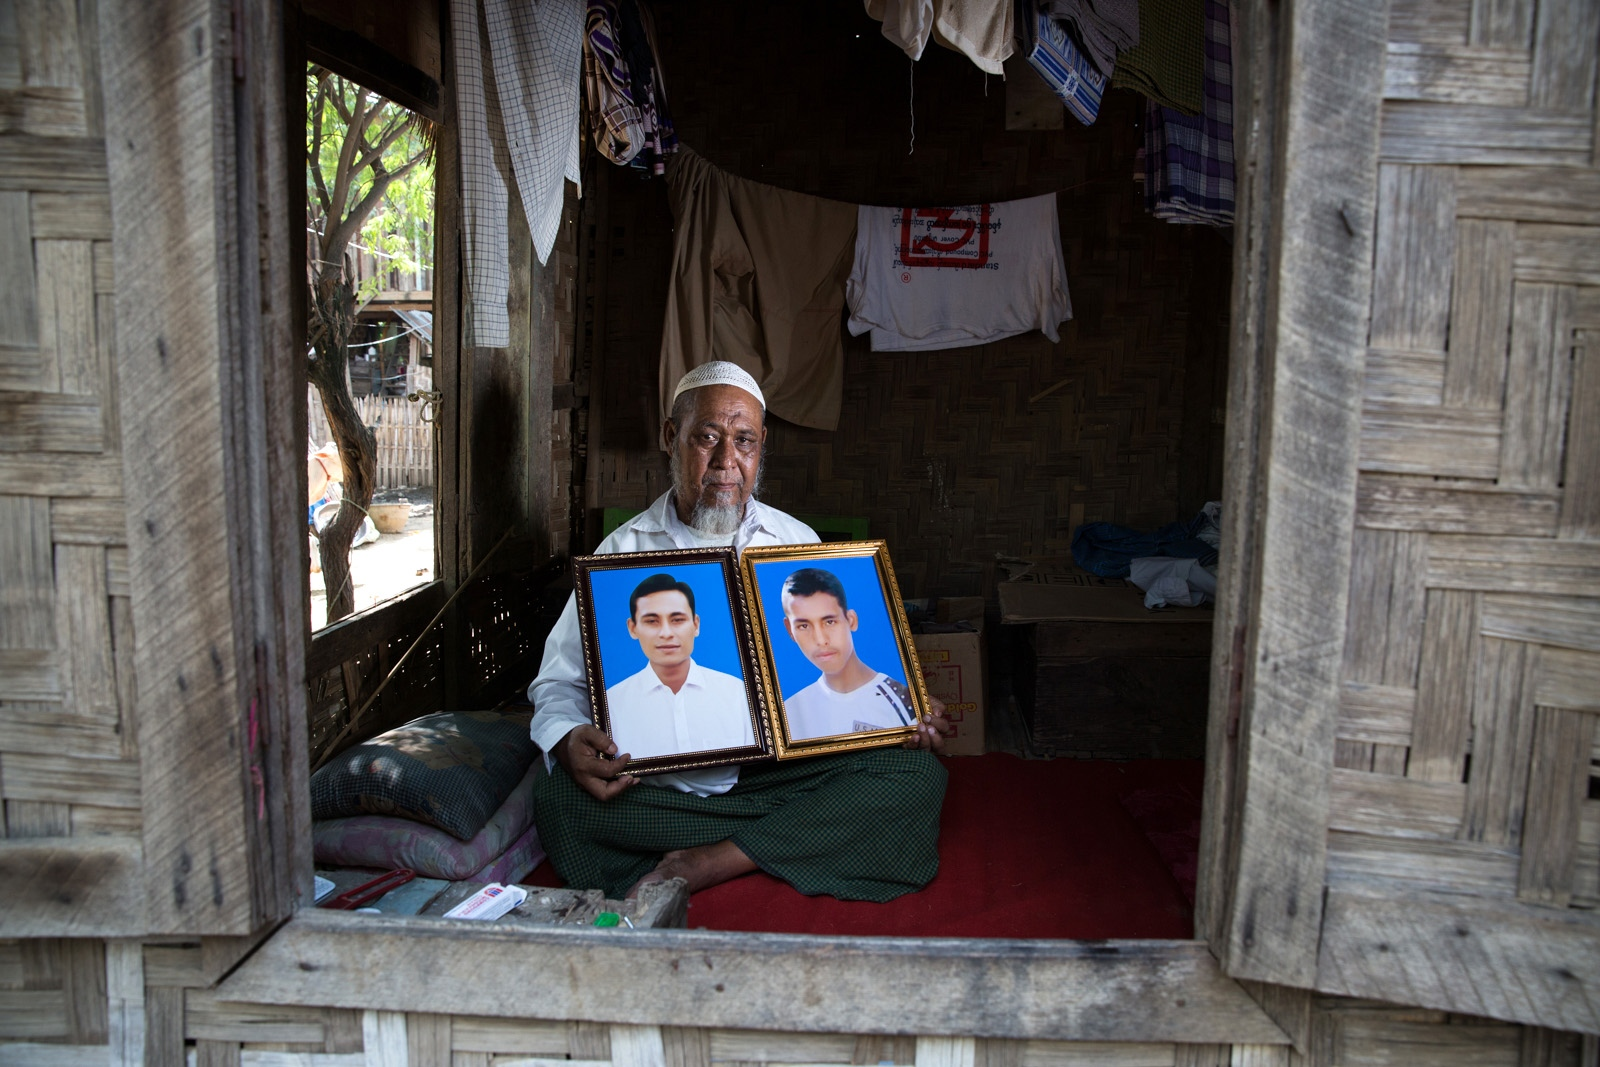 "The father of Tin Oo, 19, (Right) and Maung Maung Min Ko, 36, (Left) holds her sons' portraits. Special Branch officers arrested Tin Oo and his brother Maung Maung Min Ko at a checkpoint near Lashio in northern Shan State on November 14, 2014 for allegedly establishing the ""Myanmar Muslim Army."" Despite the government's failure to present evidence of the existence of the Myanmar Muslim Army or Tin Oo and Maung Muang Min Ko's connection to the group, on December 7, 2015, the Aung Myay Tharsan Township Court in Mandalay Region sentenced the two brothers to five years in prison for allegedly violating section 5(J) of the 1950 Emergency Provisions Act.  In 2017, the Myanmar authorities released Maung Maung Min Ko under a presidential amnesty. Tin Oo remains detained at Mandalay Obo prison."